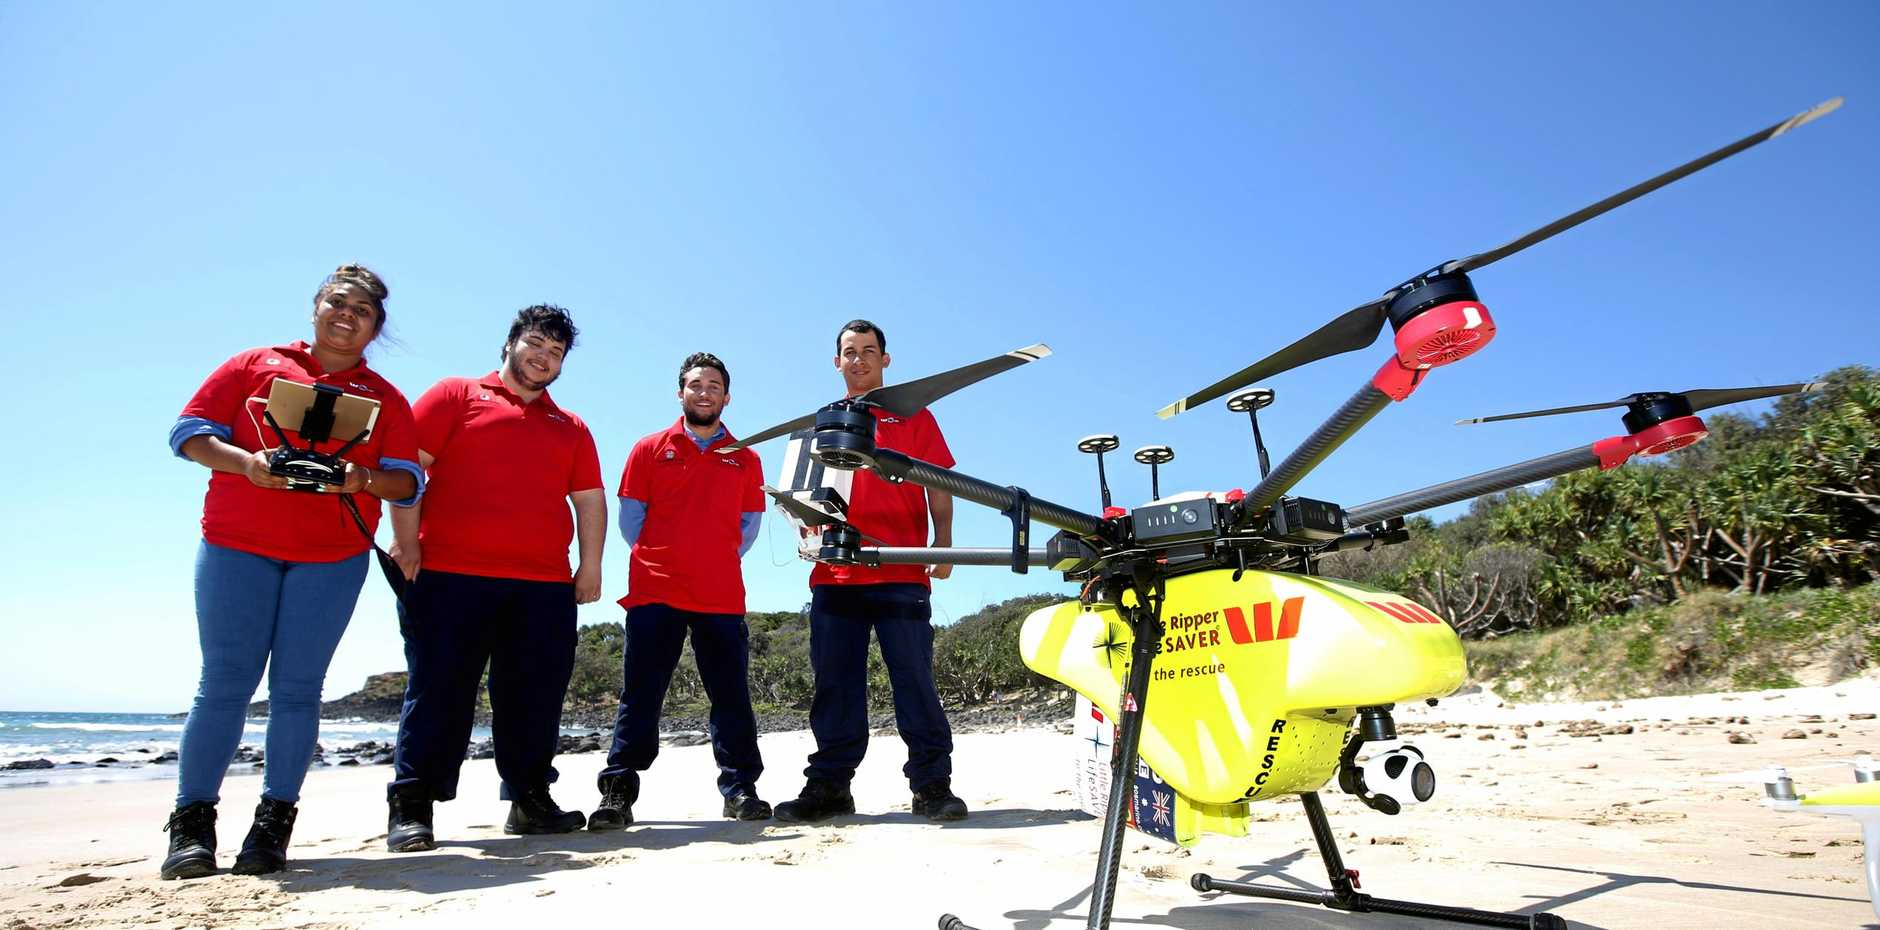 SURVEILLANCE CREW: Kaeeann Phillips, Jarrod Mye, Chase Coghill and Dylan Finn are learning how to operate shark surveillance drone technology.